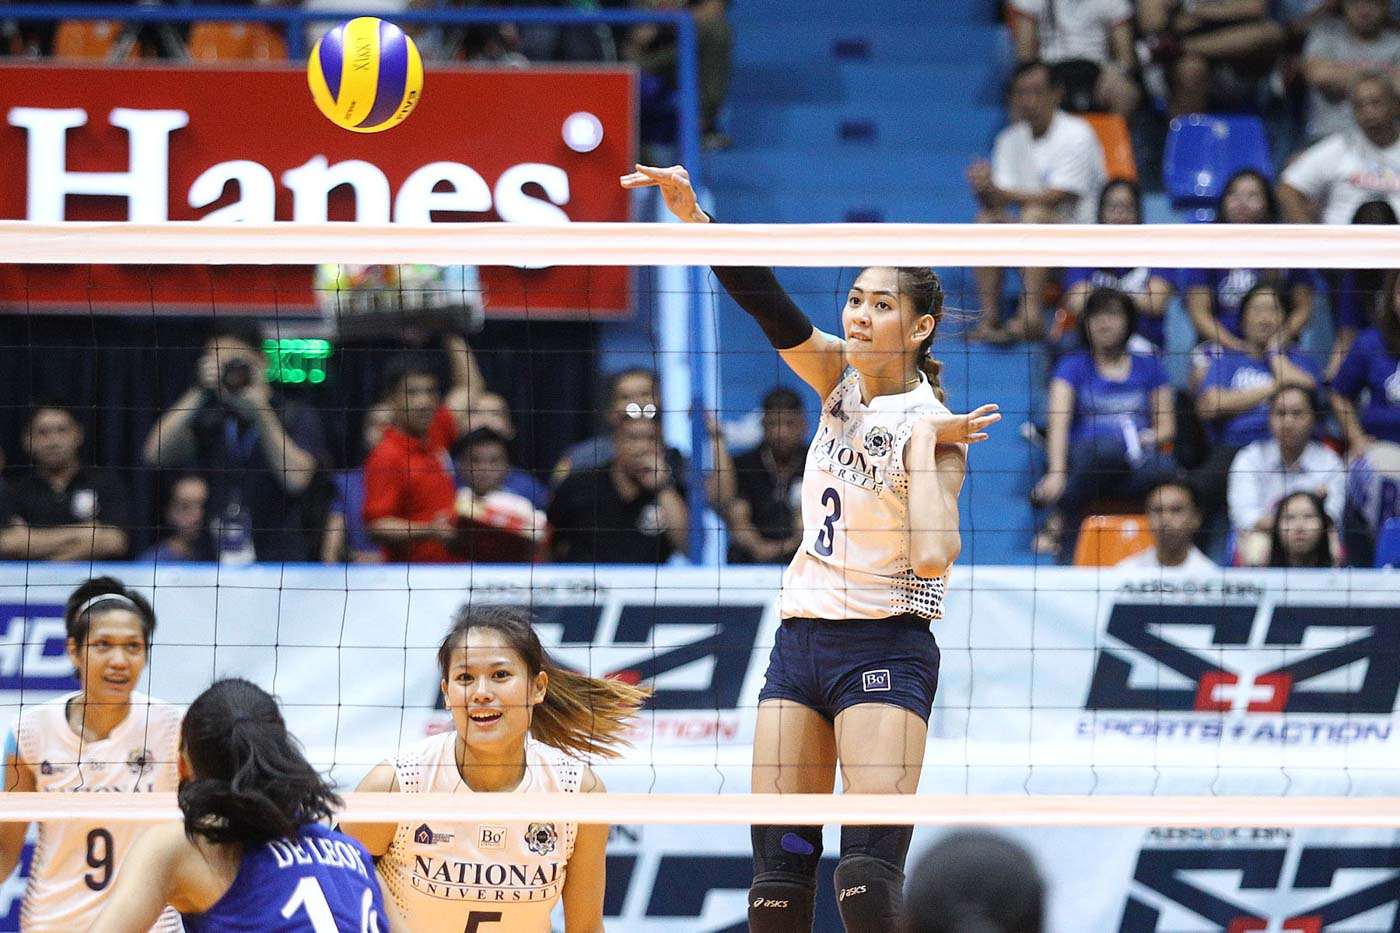 Rebisco-PSL Manila bows down to China, stays winless in Asian Club Championships